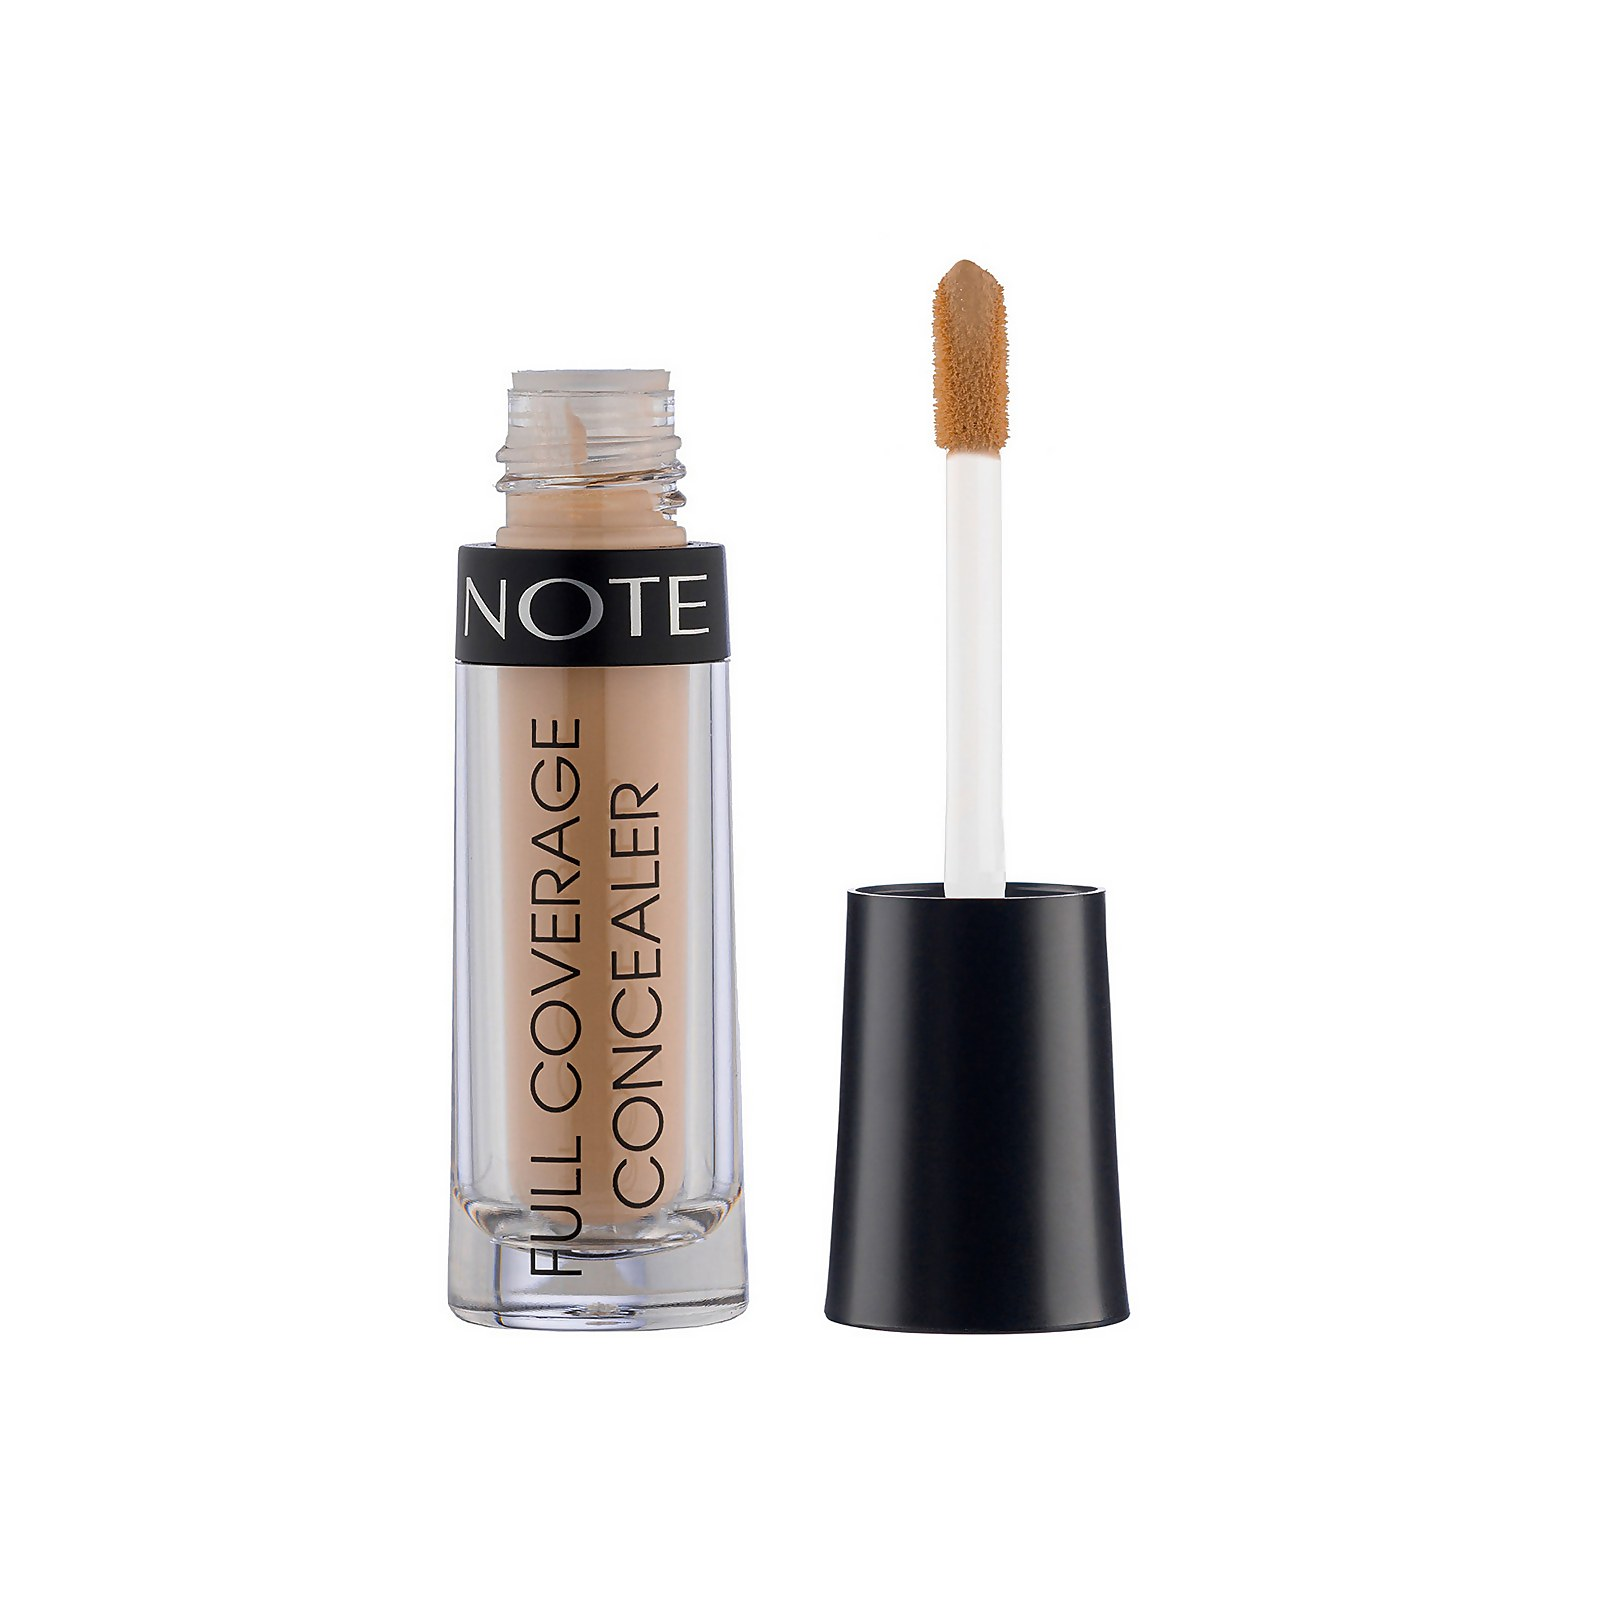 Note Cosmetics Full Coverage Liquid Concealer 2.3ml (Various Shades) - 01 Ivory